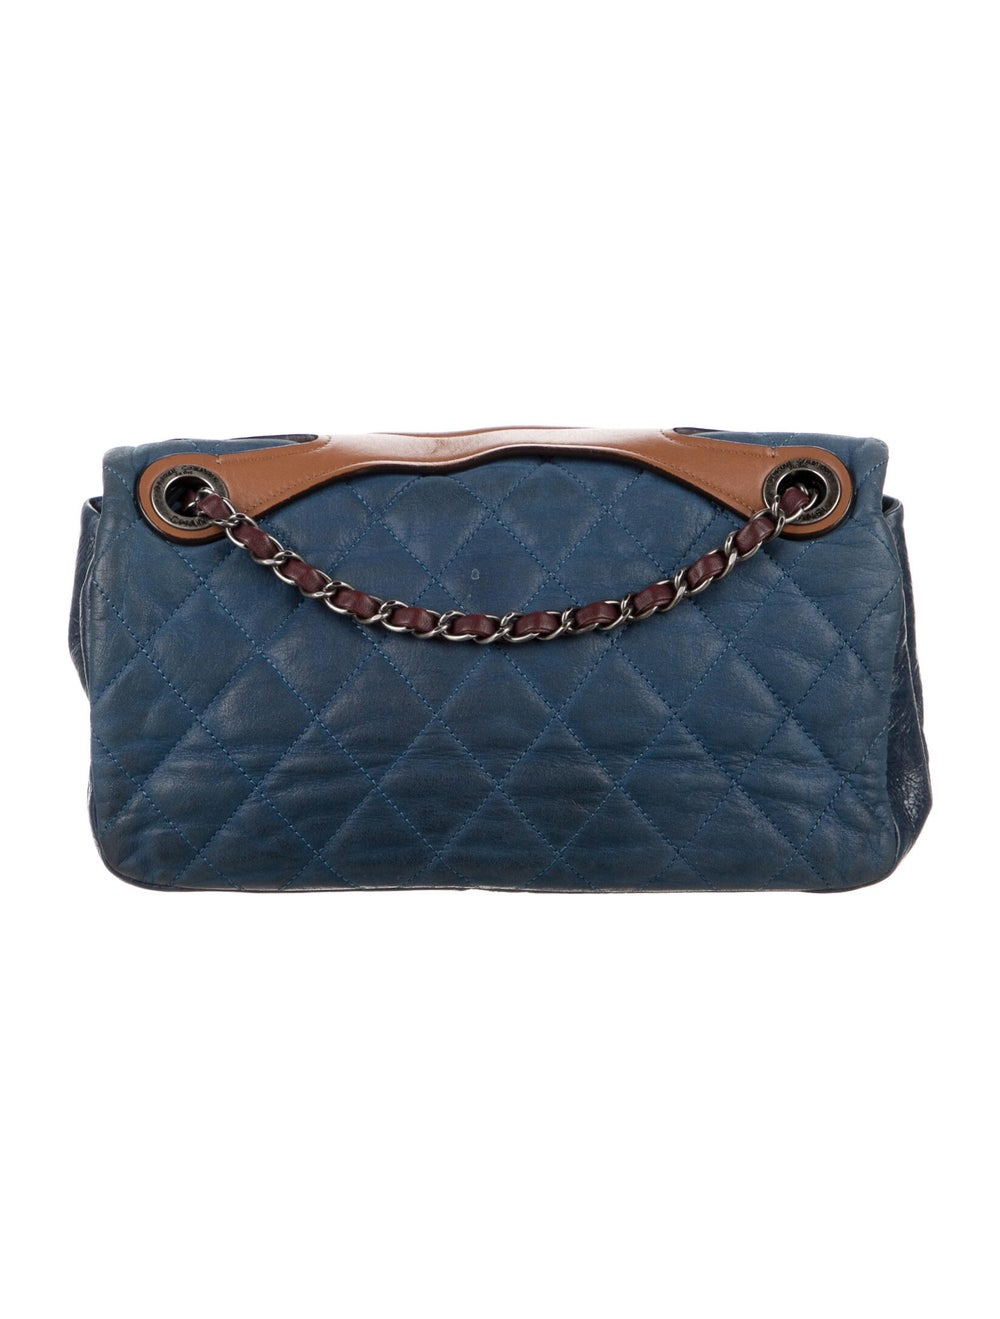 Chanel In the Mix Flap Bag Blue - image 4